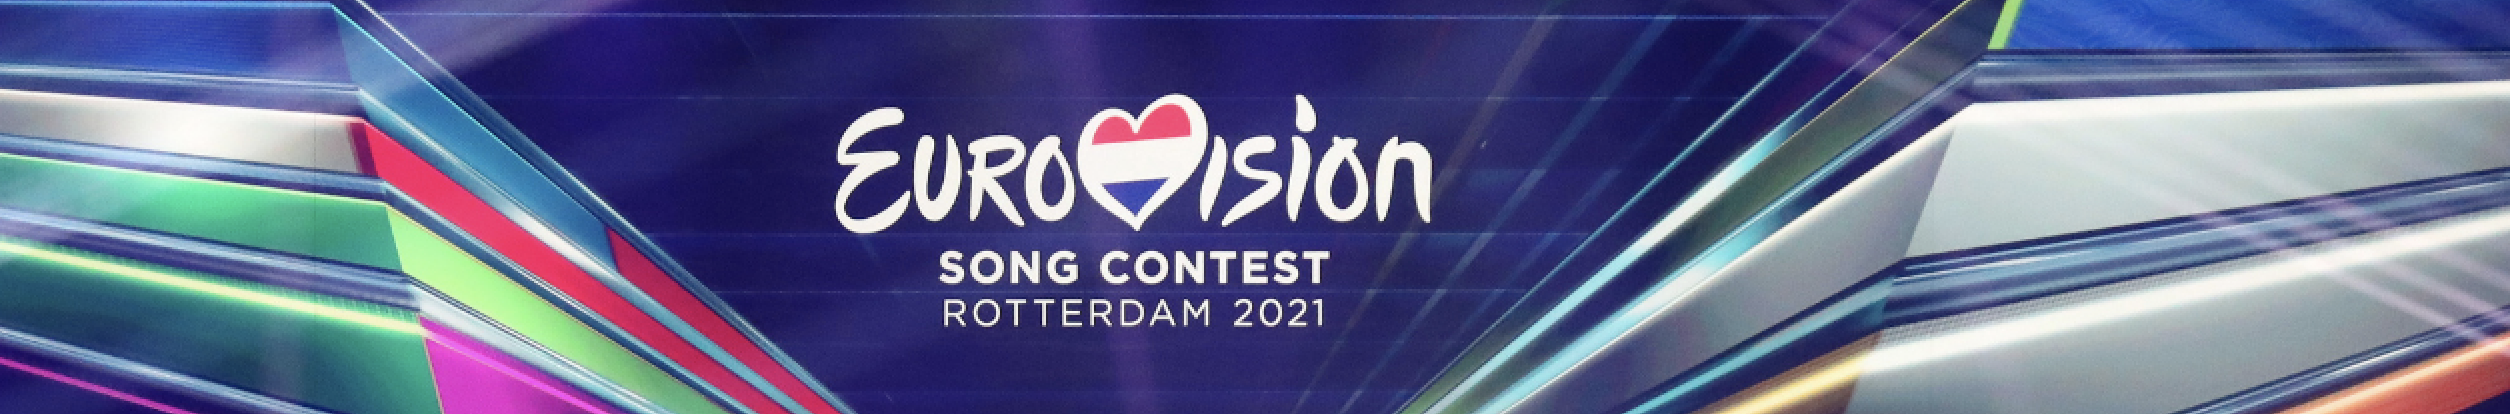 Eurovision song contest logo on screen behind stage at the 2021 semi-final in Rotterdam